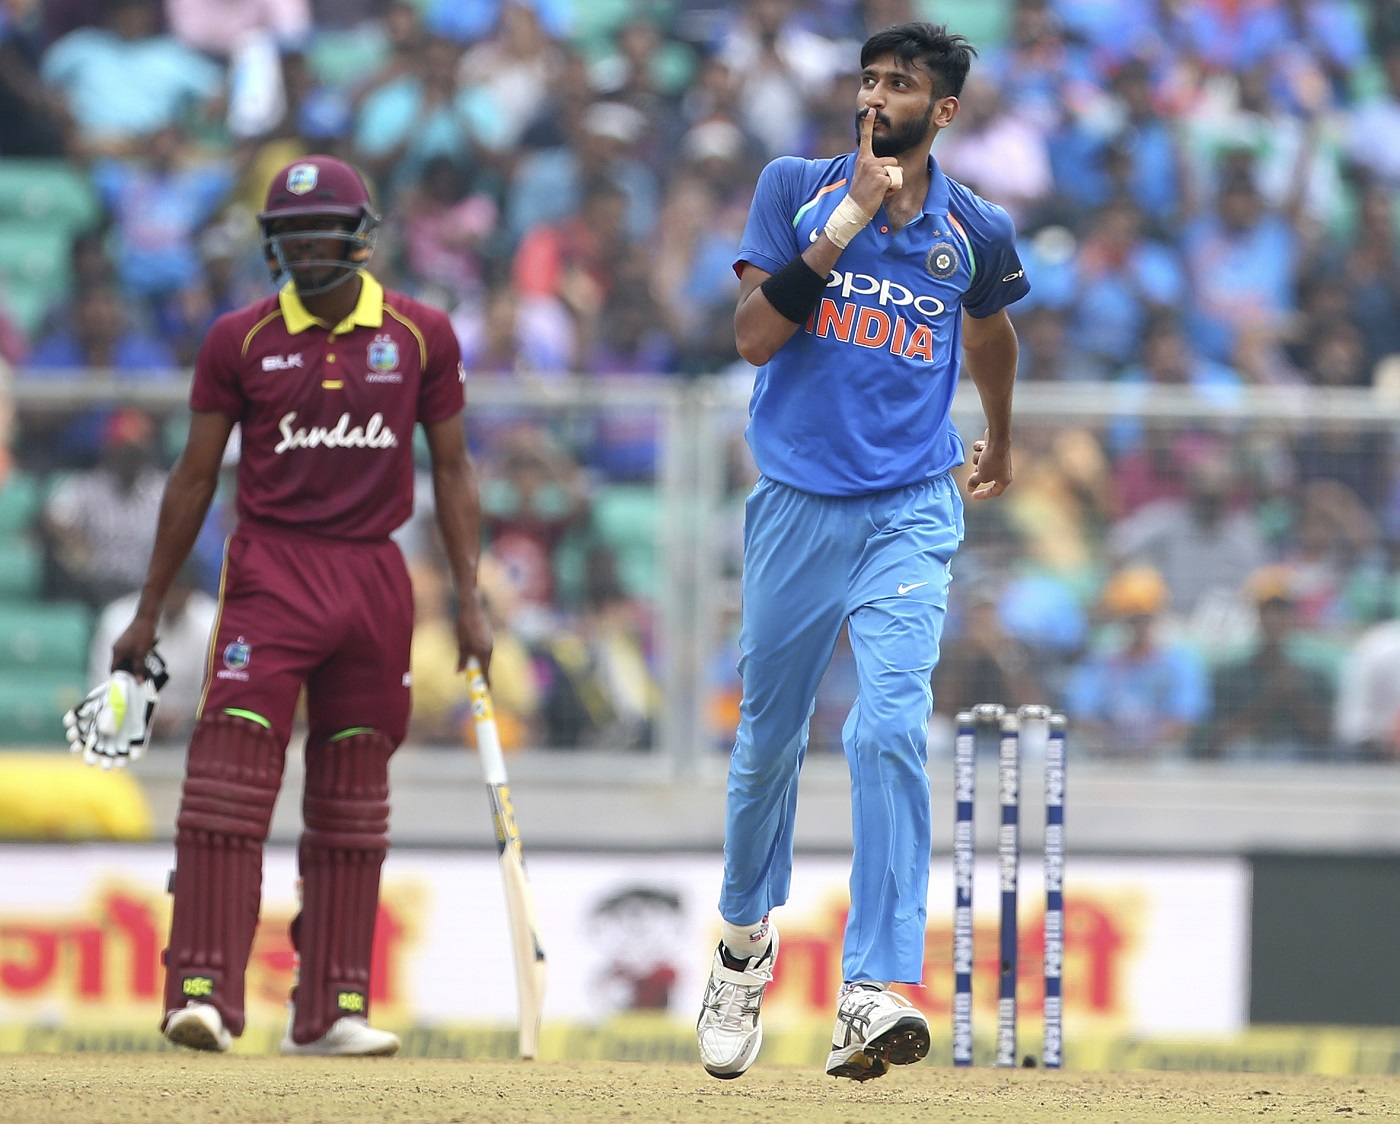 India vs Windies 2018: We Were At Our Best In The Last 2 ODIs: Ravi Shastri